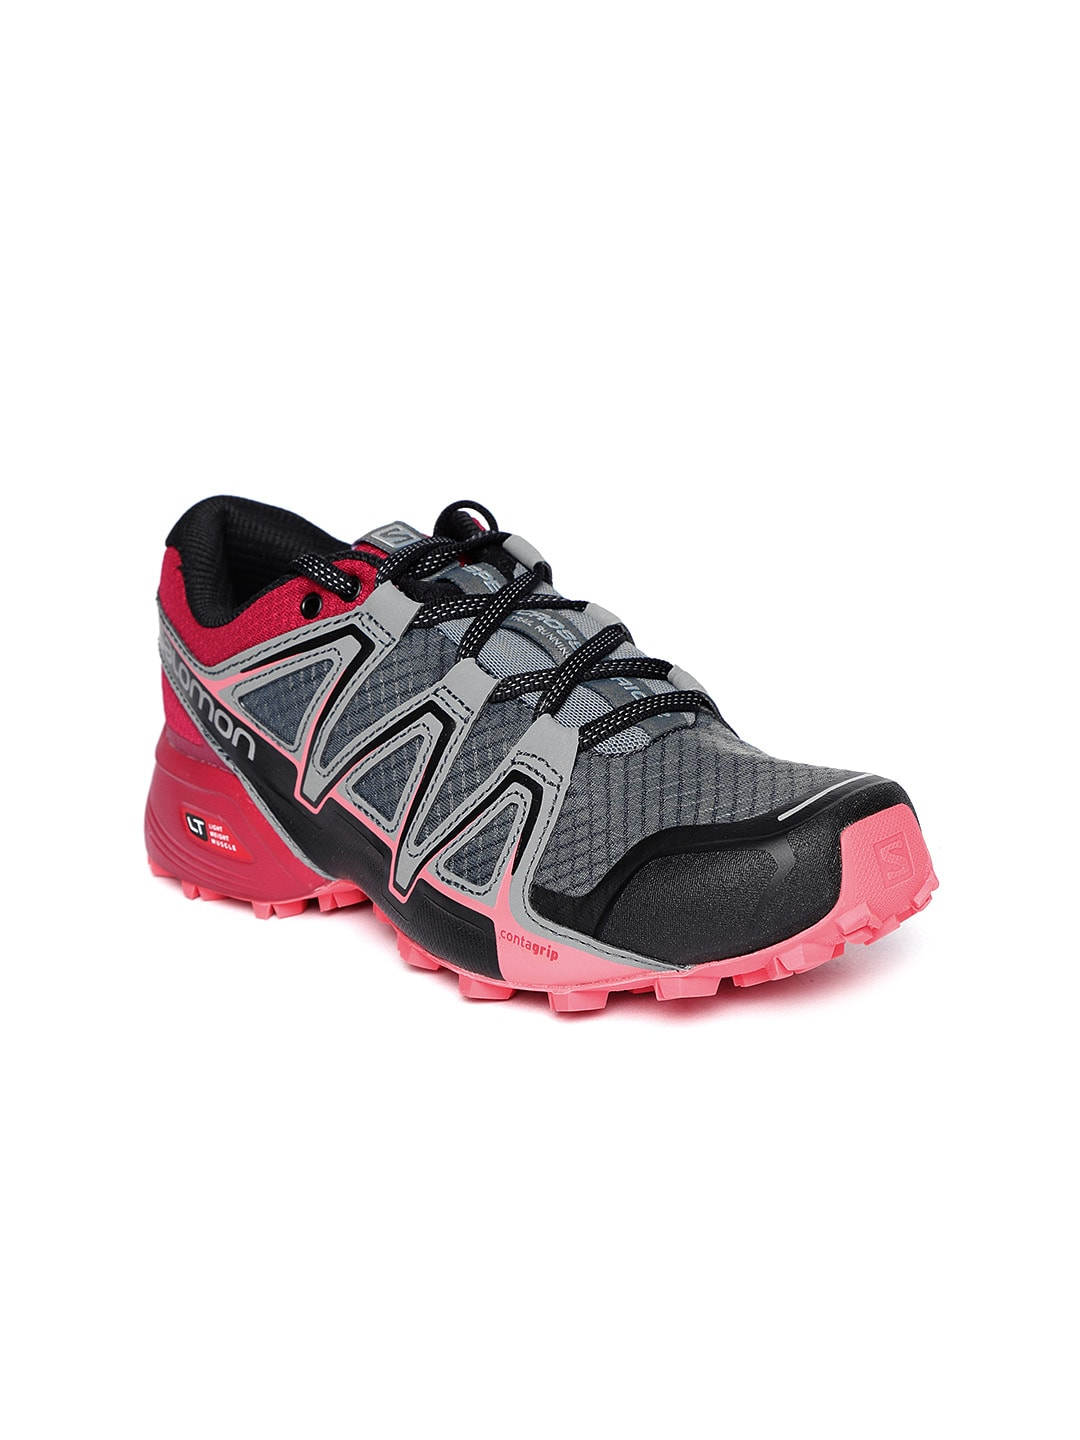 18cc16ab1e8 Trail Running Shoes - Buy Trail Running Shoes online in India